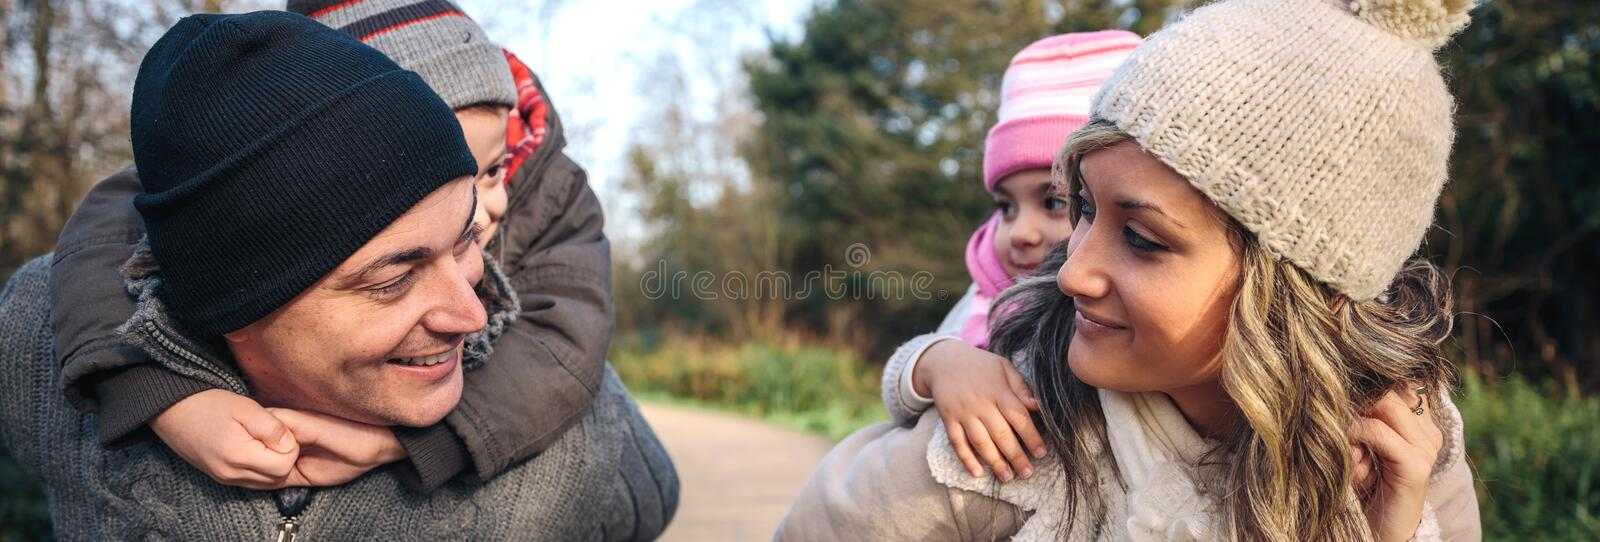 Parents giving piggyback ride to happy children outdoors stock photo